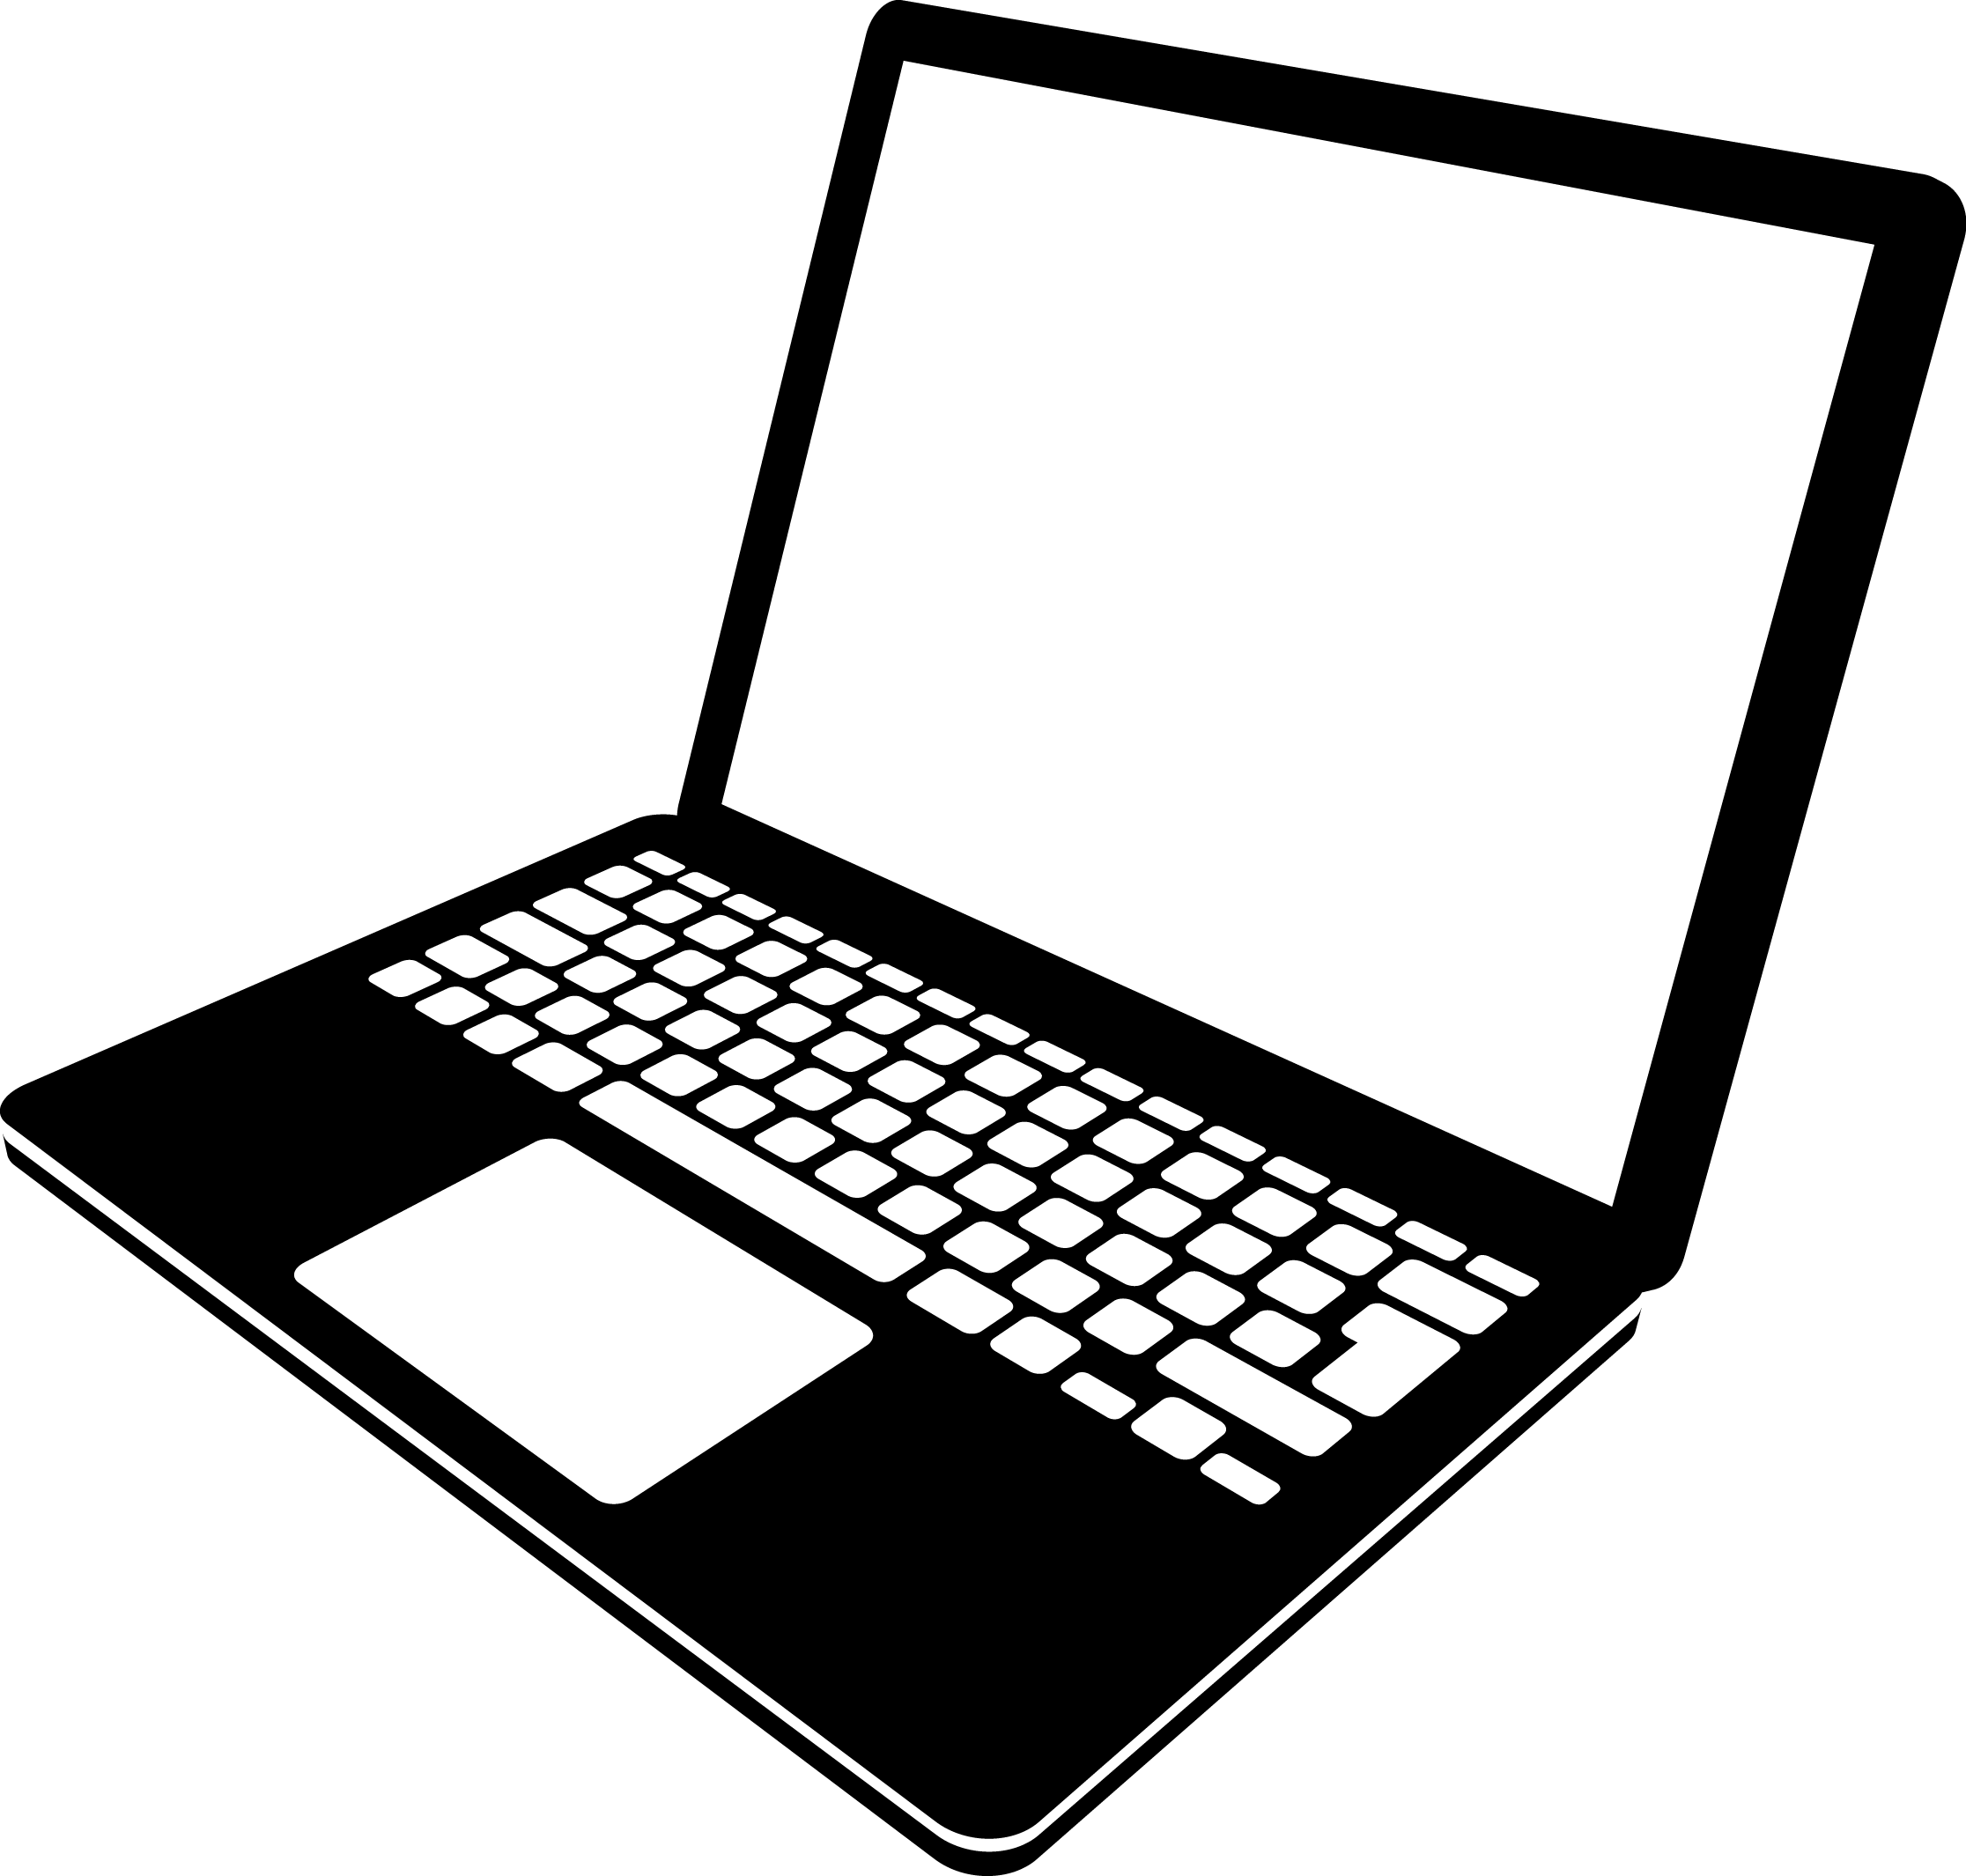 Laptop Clip Art Black And White Pictures To Pin On